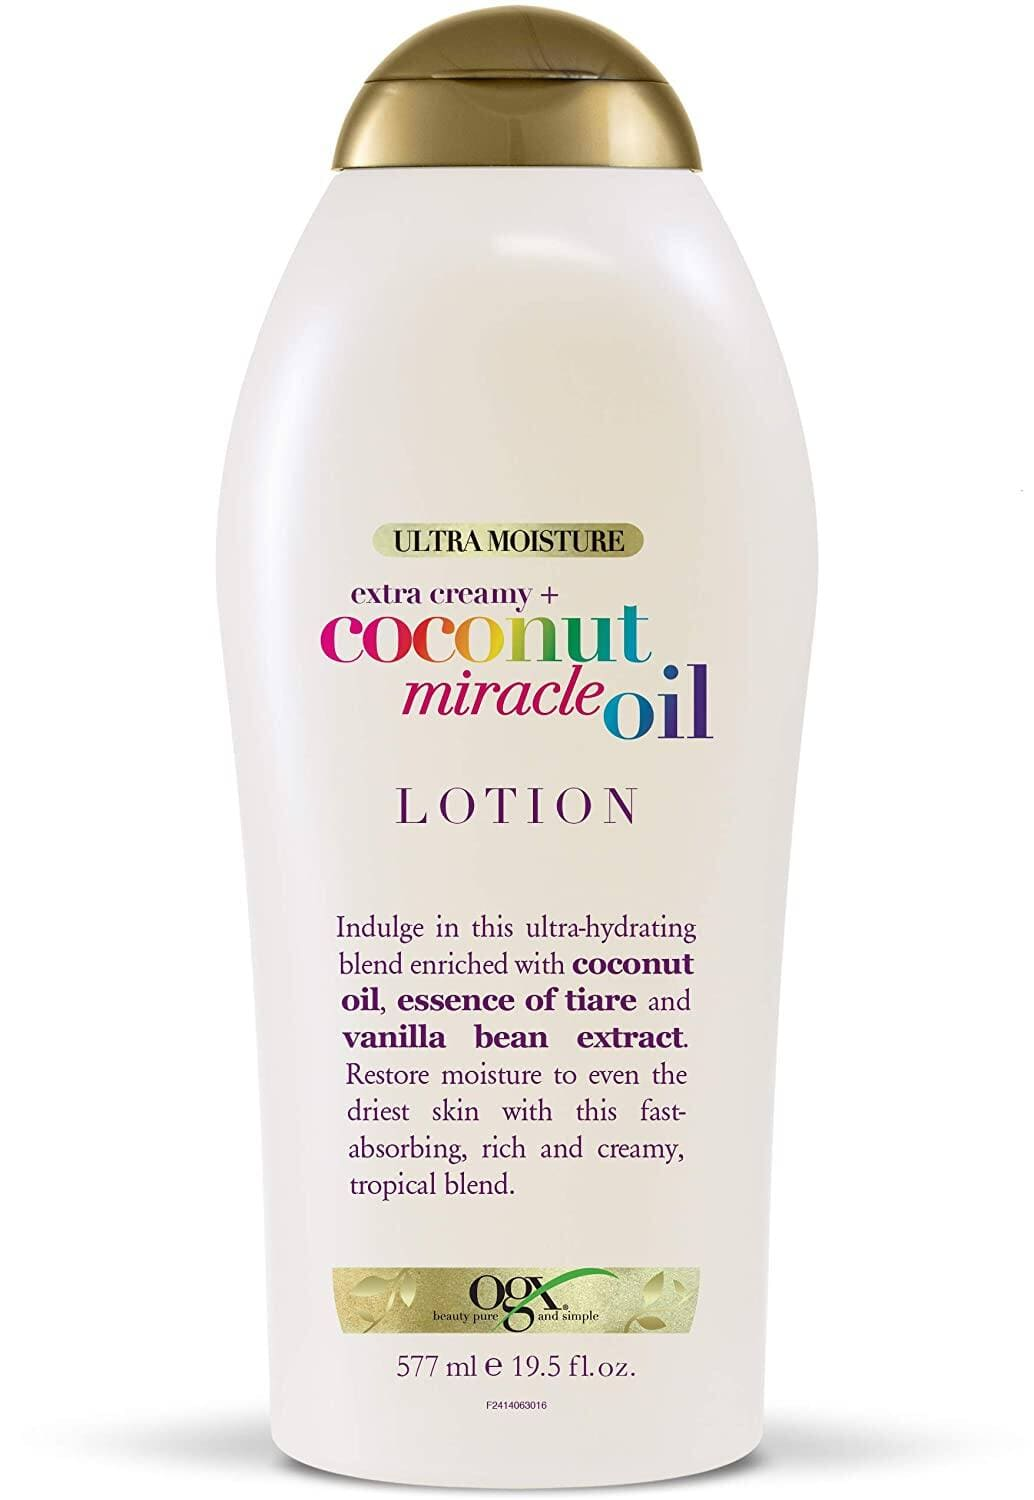 19.5-Oz OGX Extra Creamy + Coconut Miracle Oil Ultra Moisture Lotion $3.33 w/ S&S + Free Shipping w/ Prime or on $25+